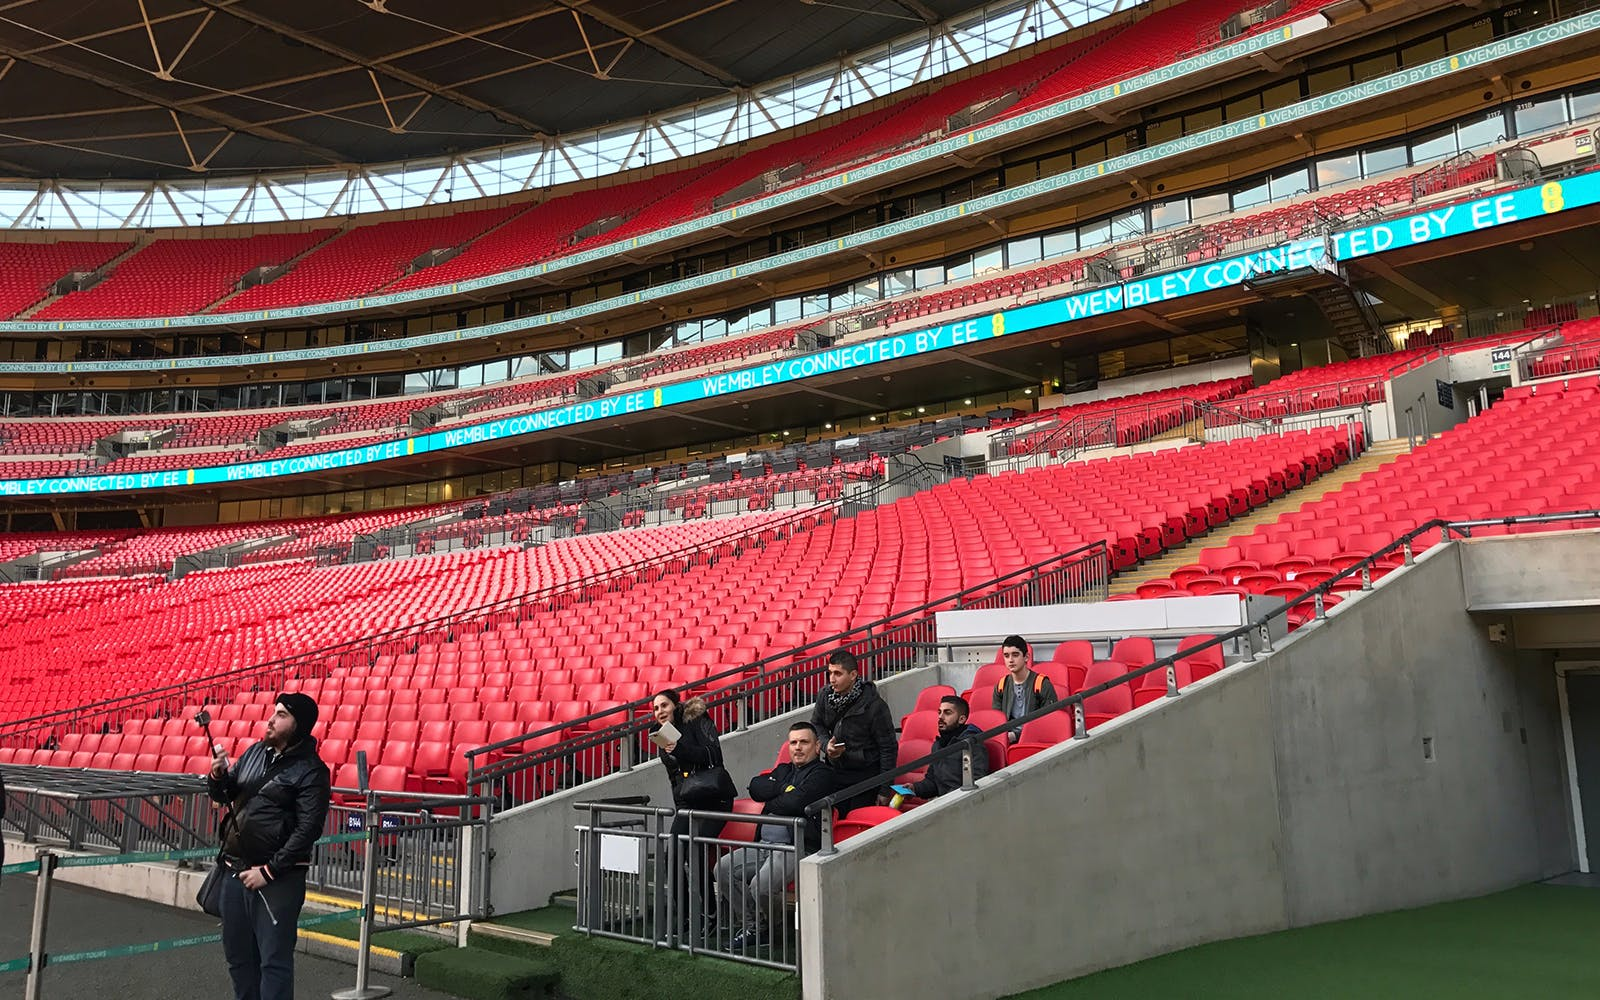 wembley stadium guided tour-3